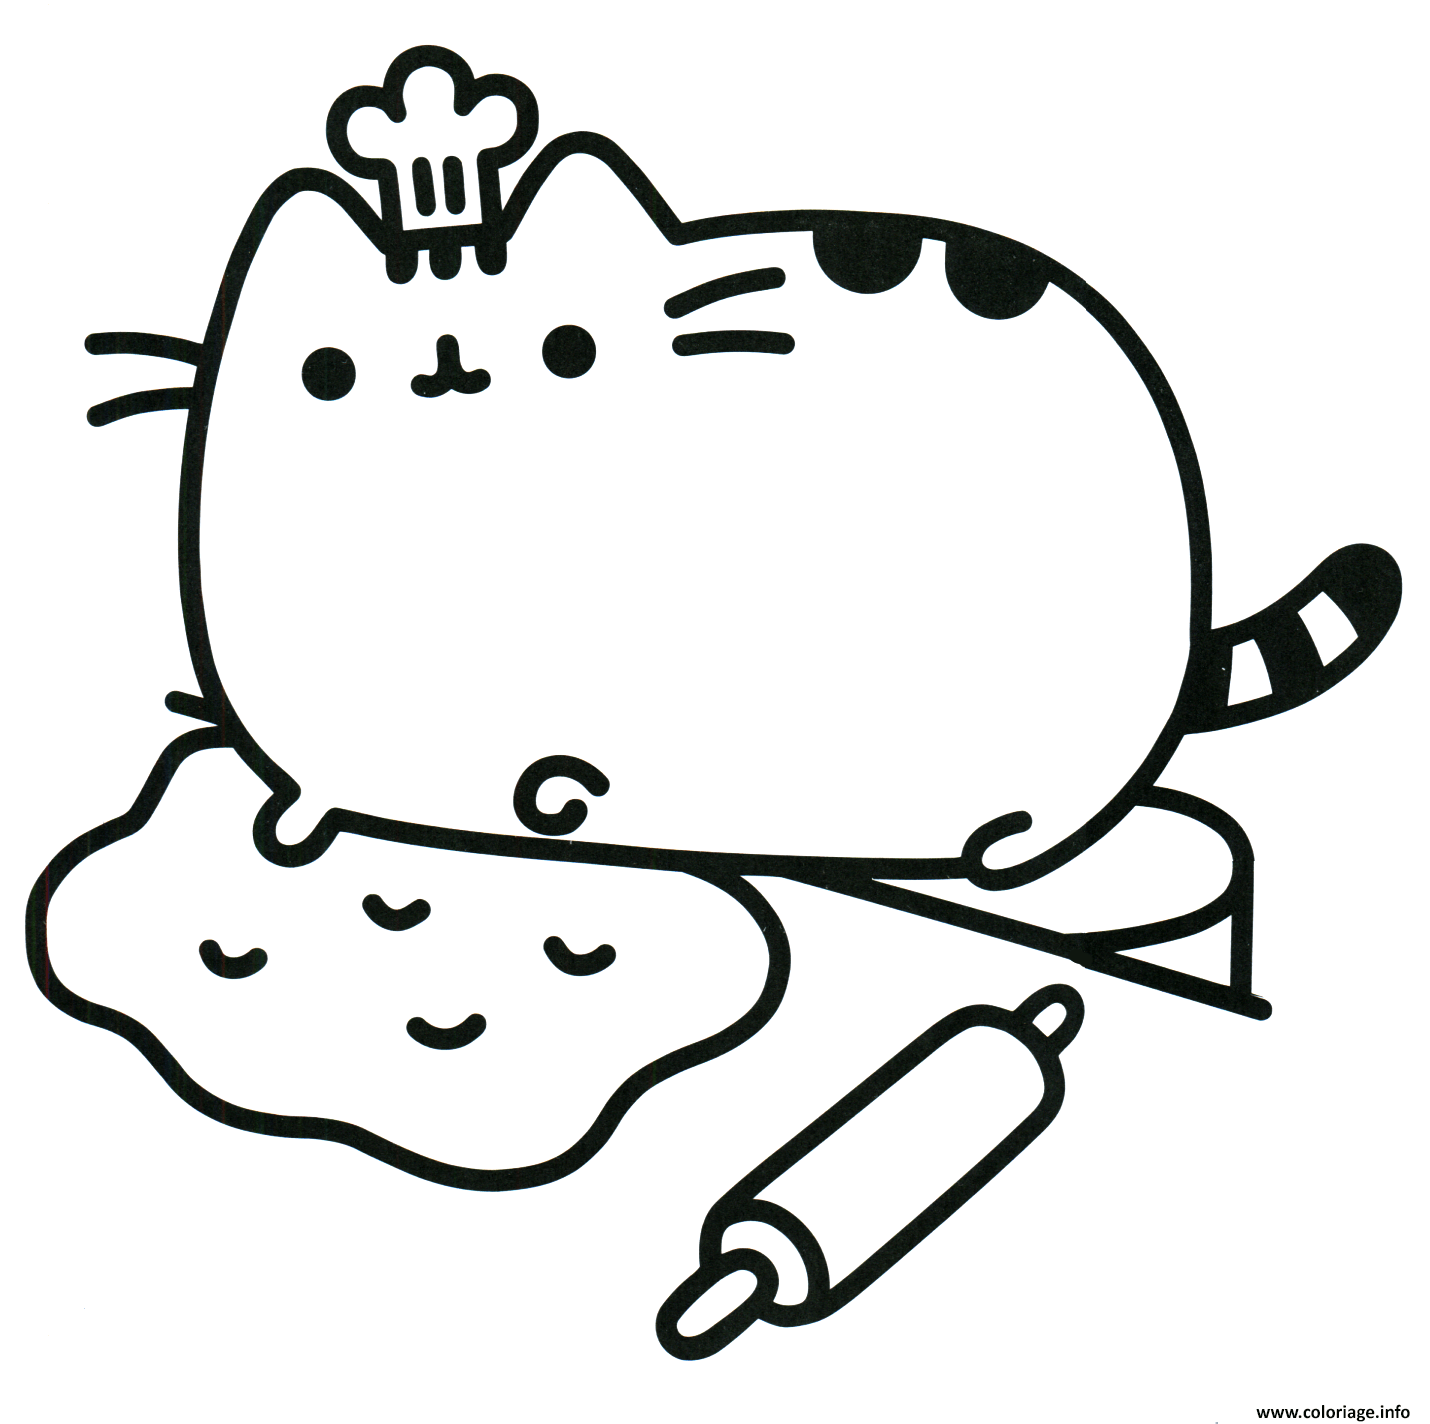 Coloriage Pusheen The Cat Chef Cook Dessin à Imprimer